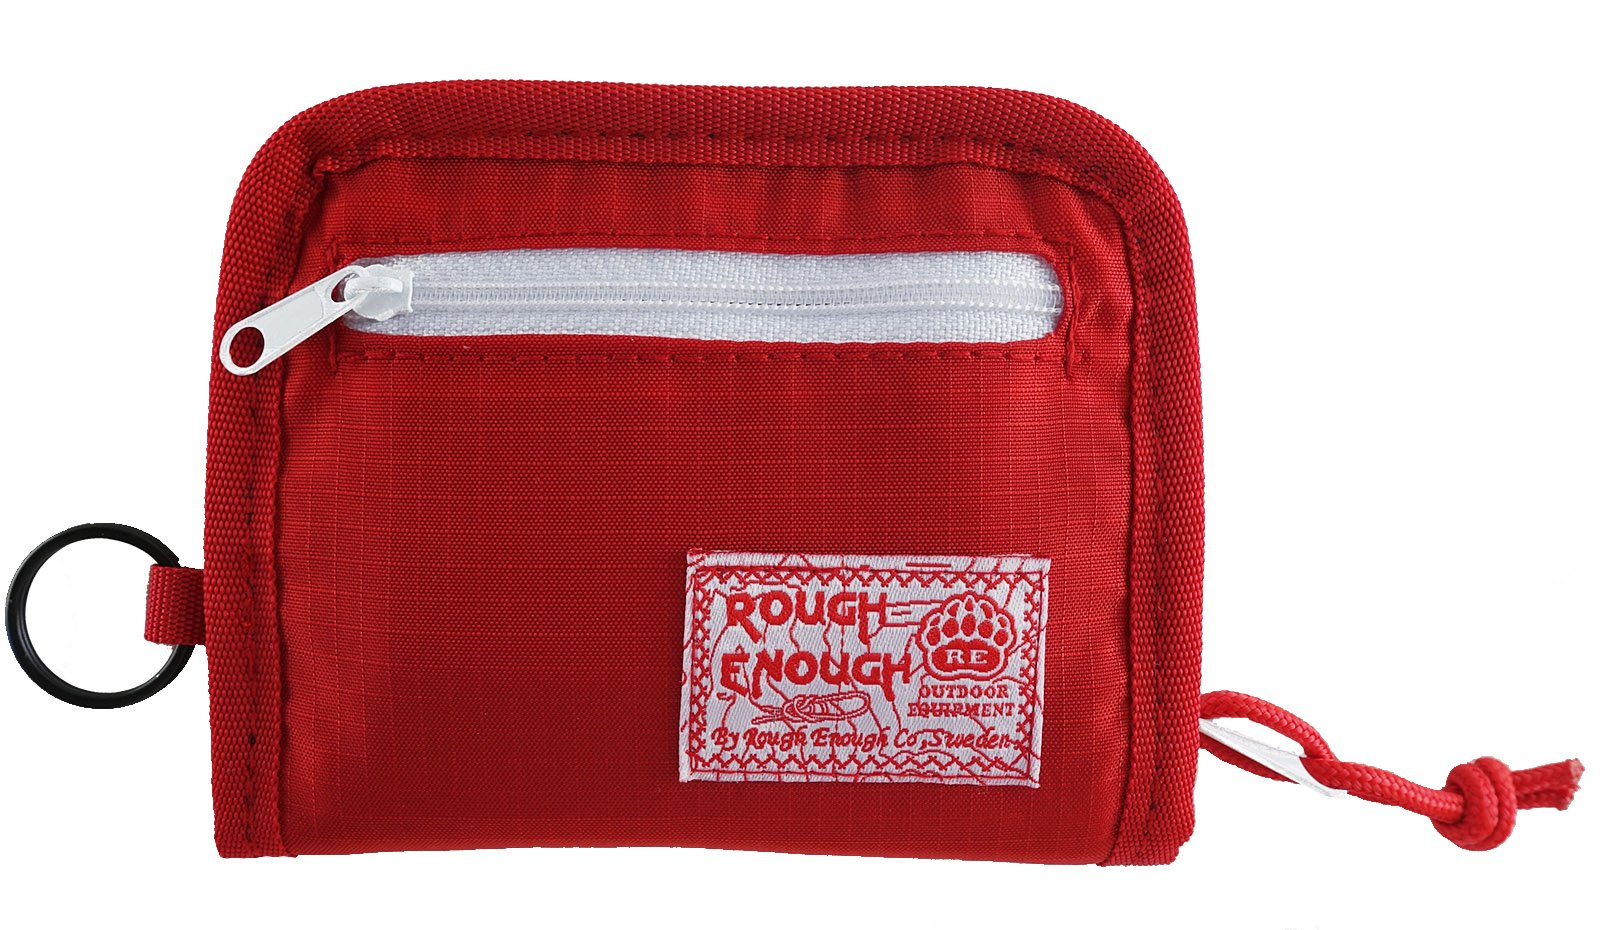 Rough Enough Prime Cordura Soft Nylon Full Zippered Sports Outdoors Short Basics Fashion Fancy Small Portable Bi-fold Coin Wallet Purse Holder Organizer Case with Key Ring for Kids Boy Men Women,Red